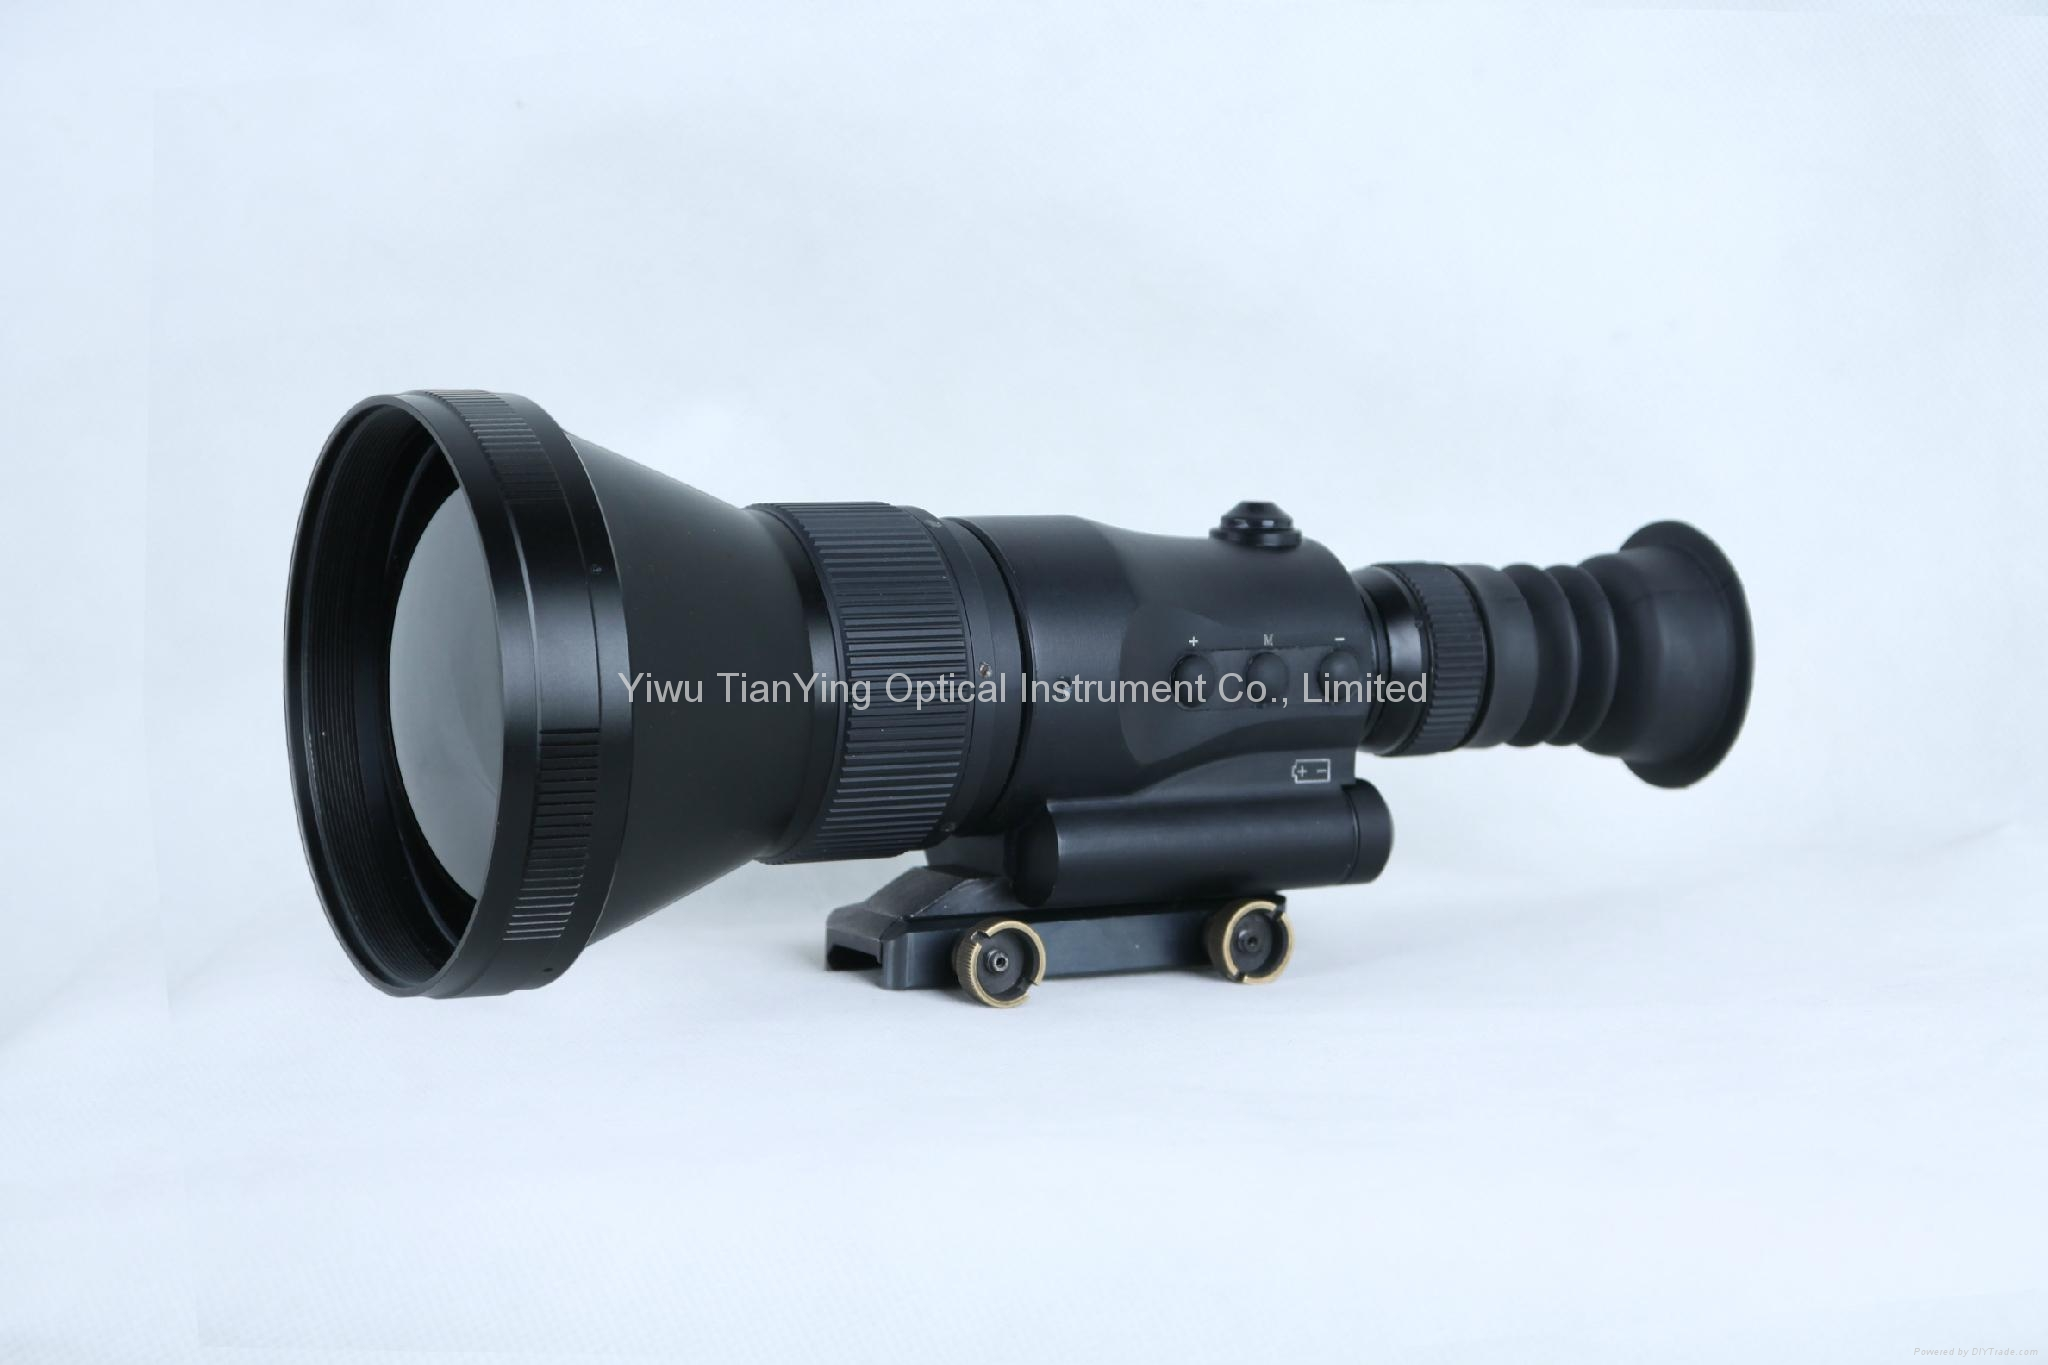 640x512 1200m Sniper Thermal Weapon Sights -1